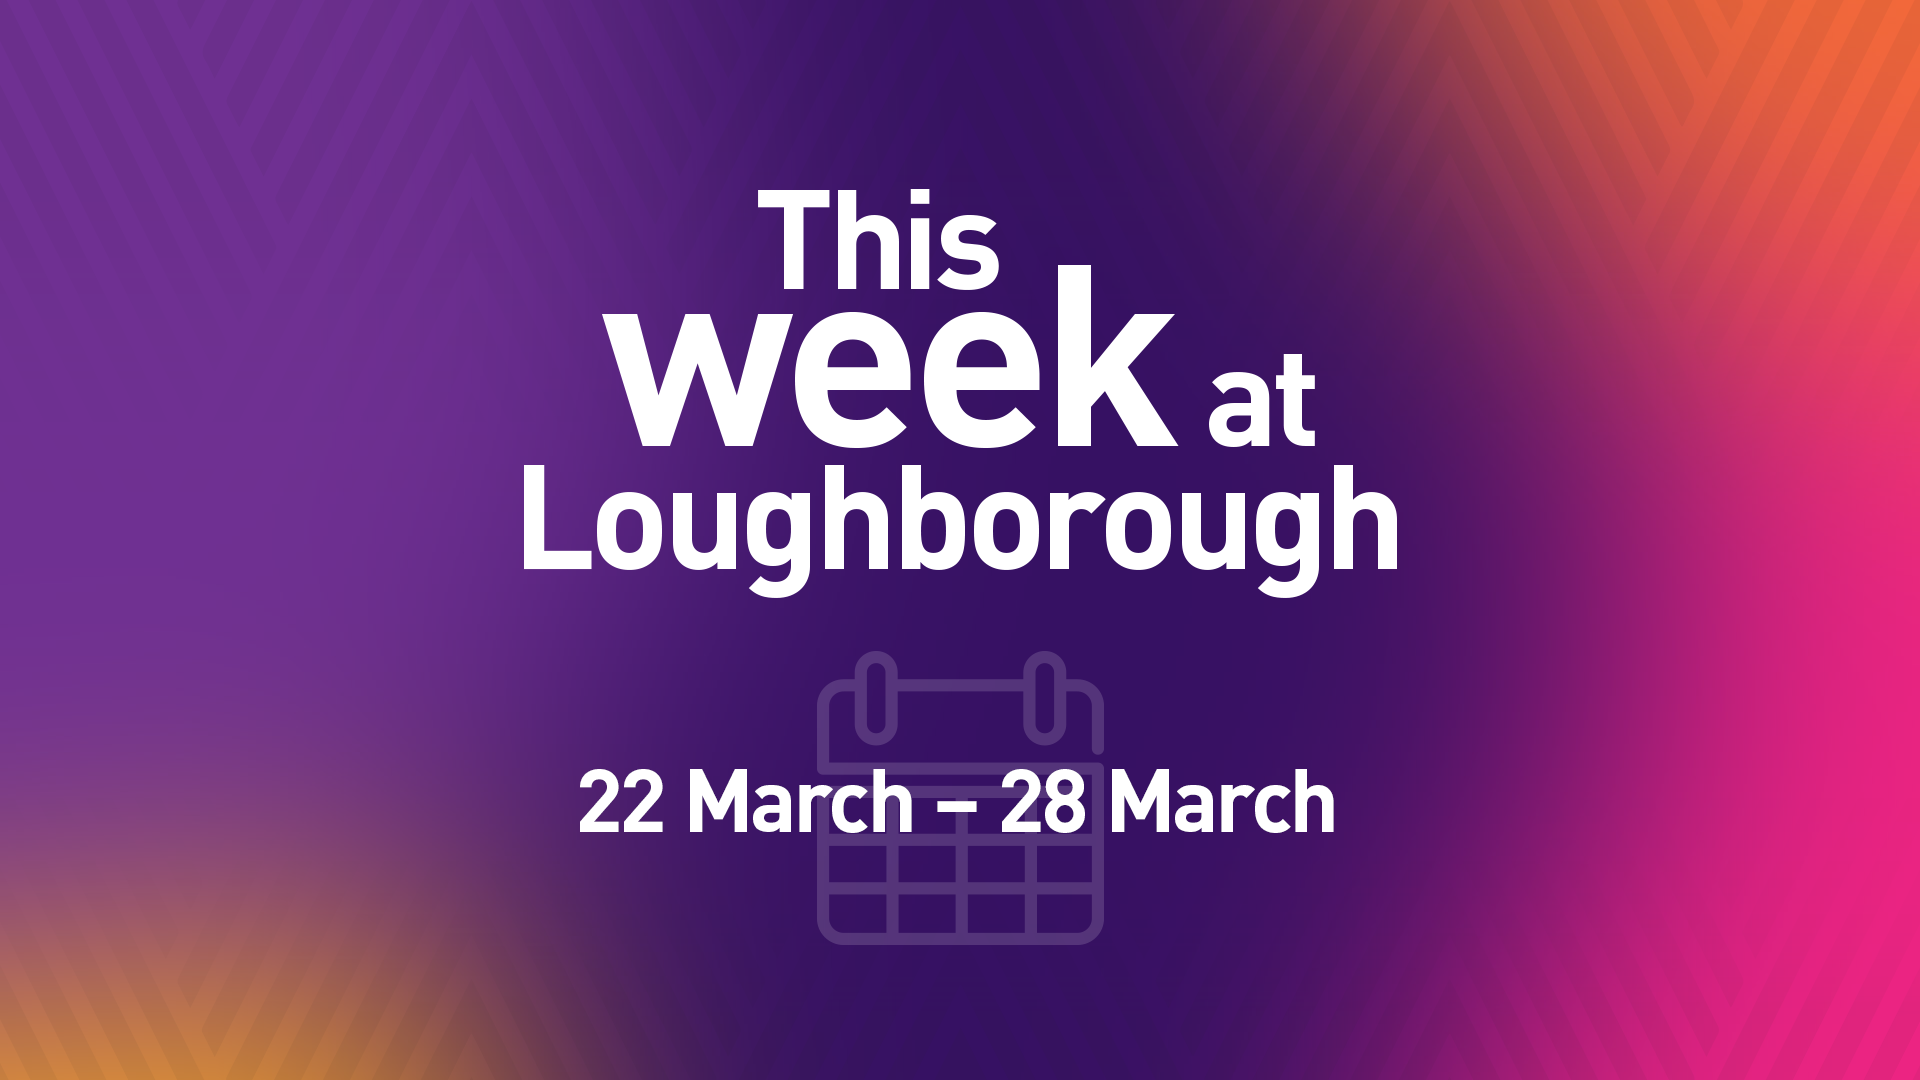 This Week at Loughborough | 22 March